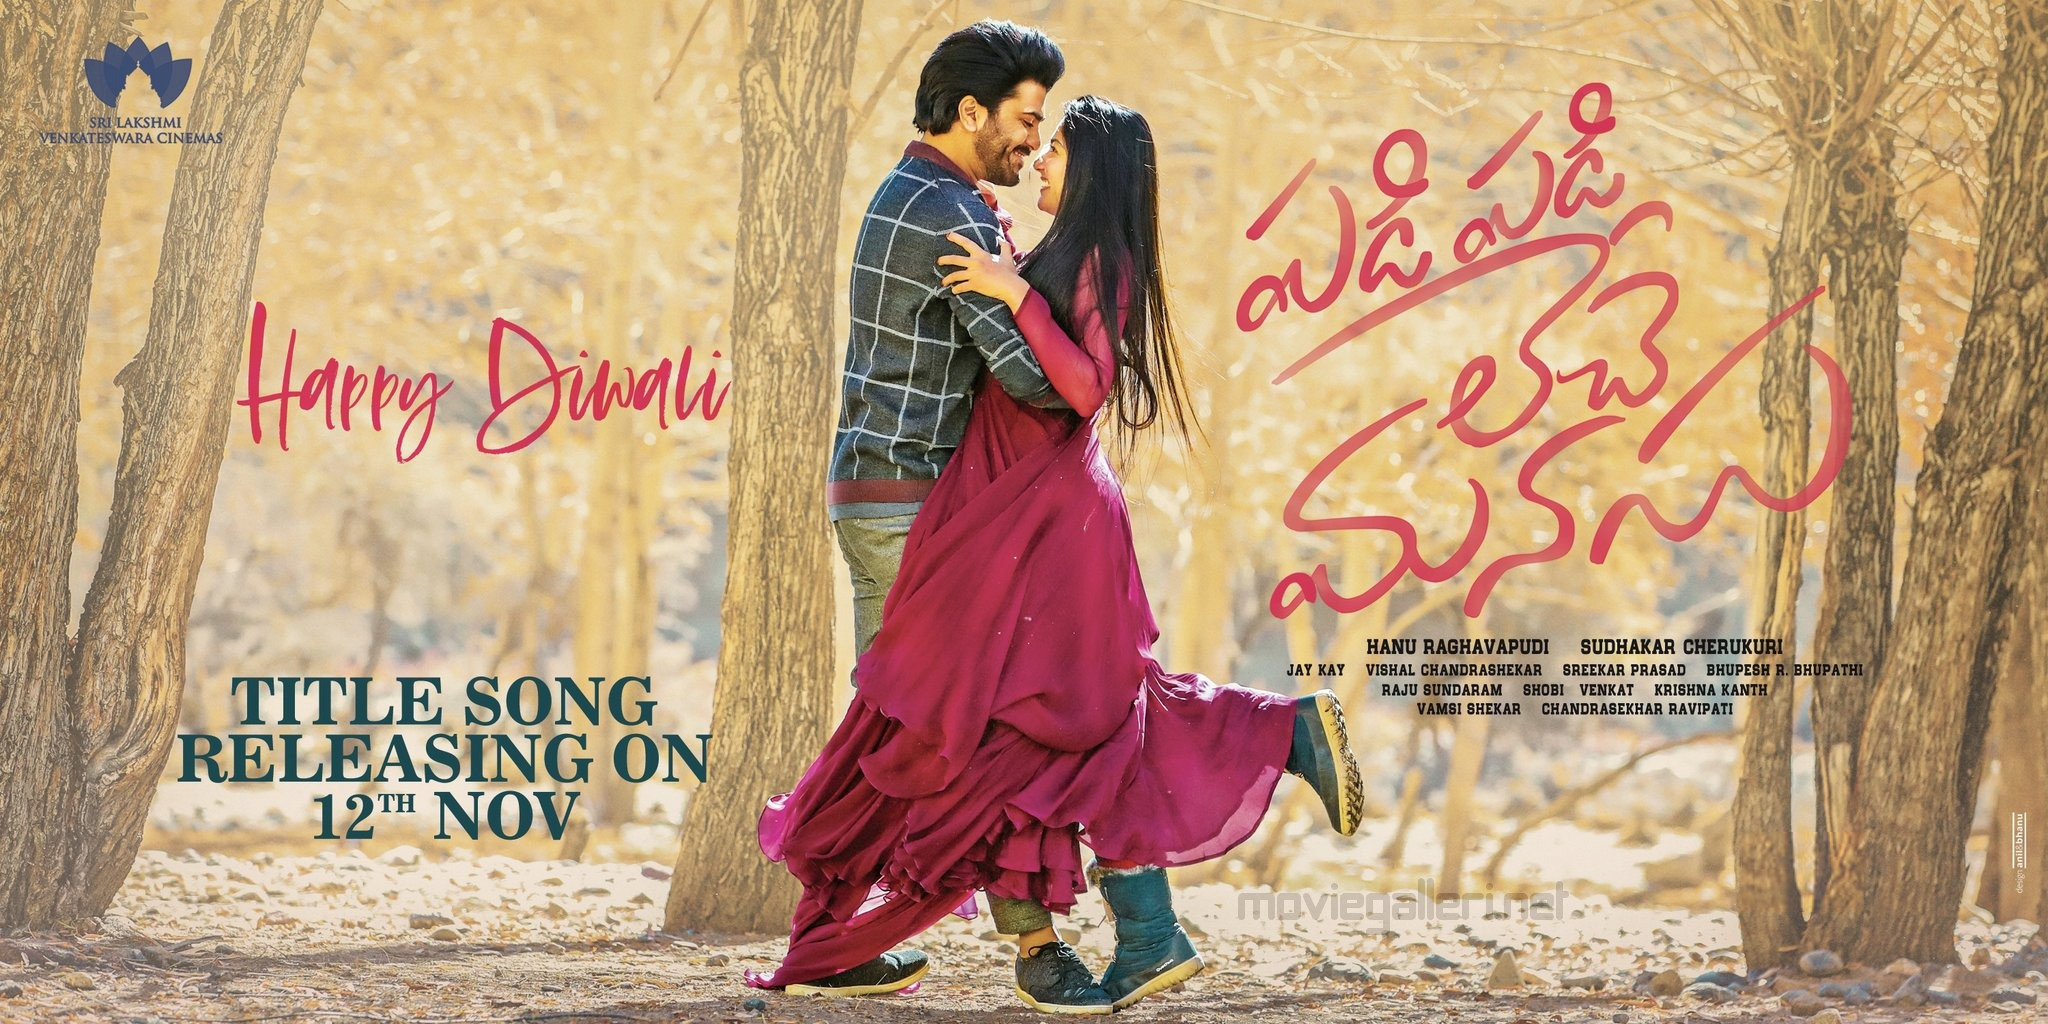 Sharwanand Sai Pallavi Padi Padi Leche Manasu Diwali Wishes Wallpaper HD